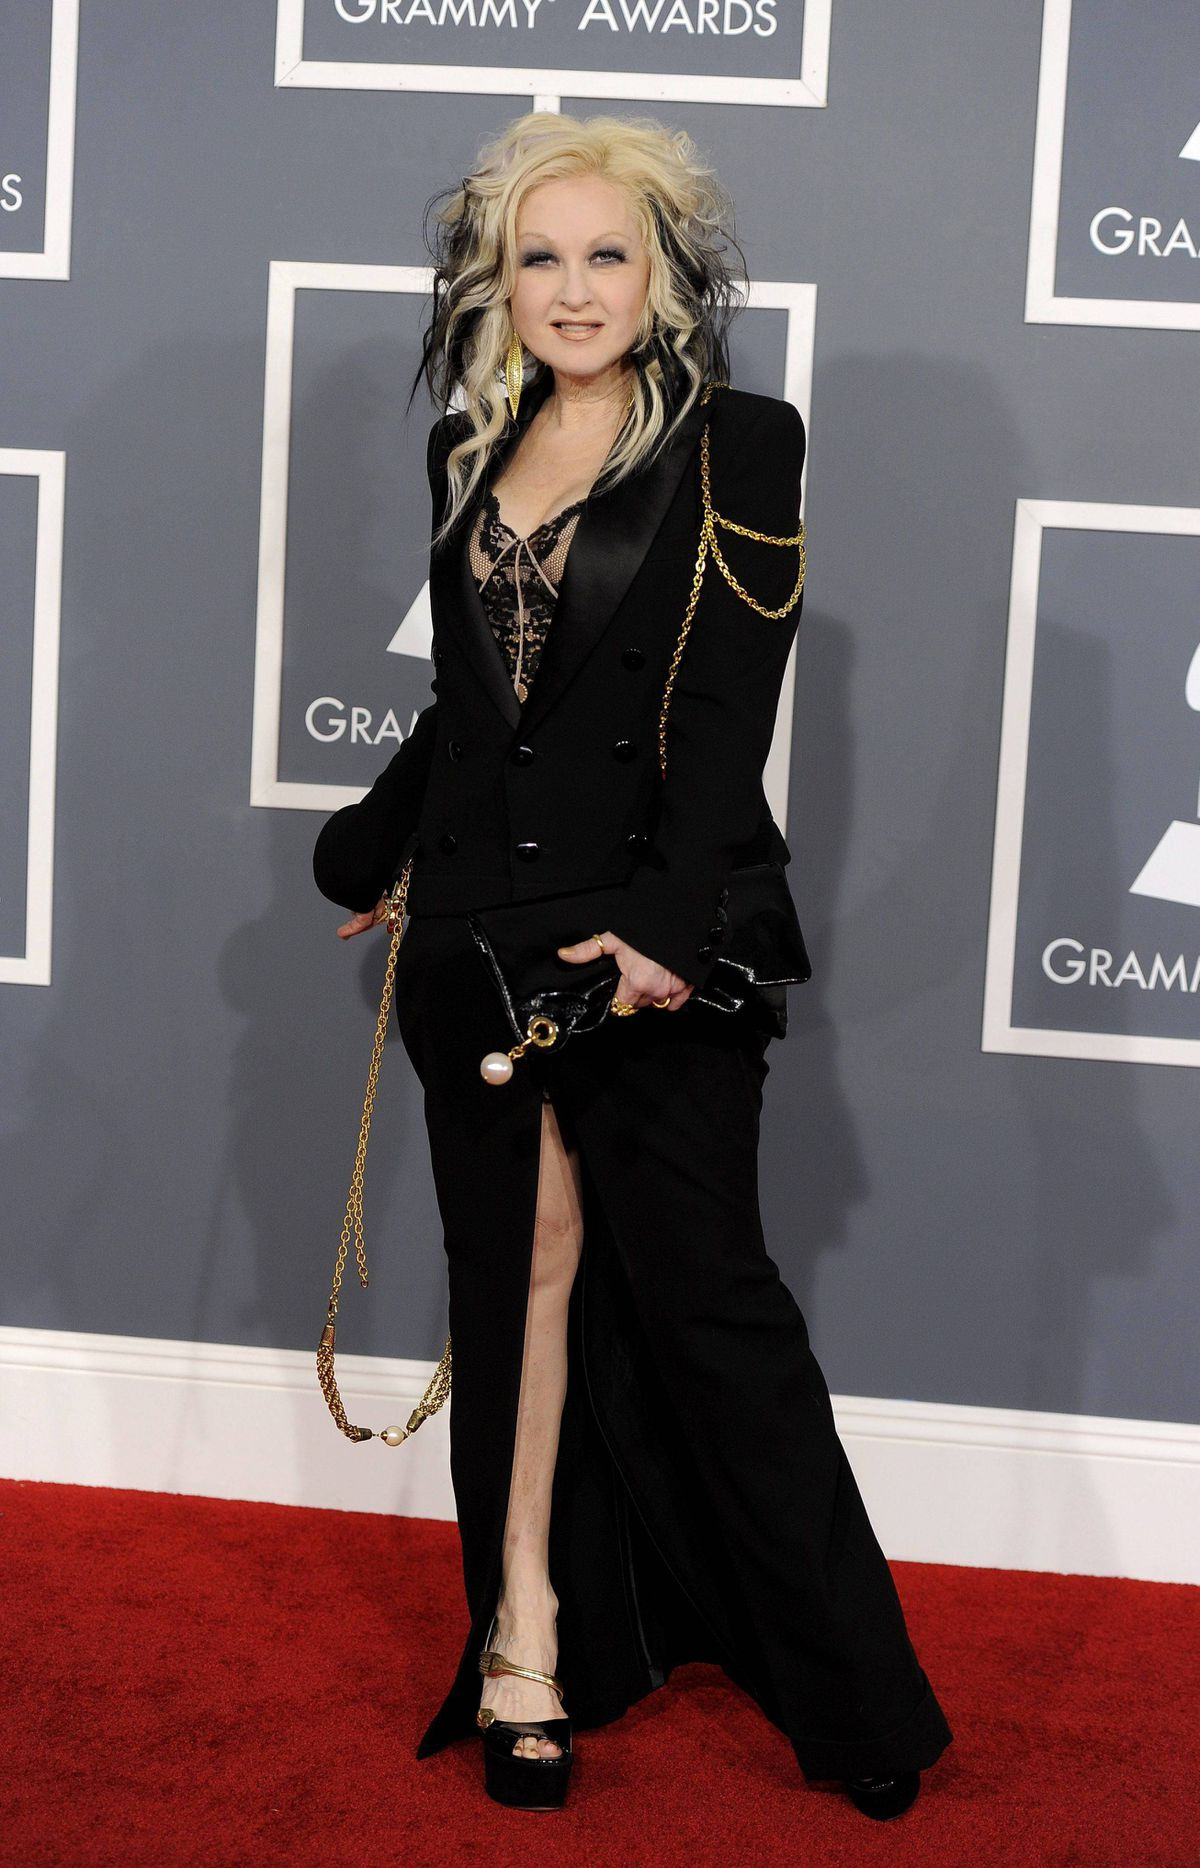 Cyndi Lauper arrives at the 54th annual Grammy Awards on Sunday, Feb. 12, 2012 in Los Angeles.